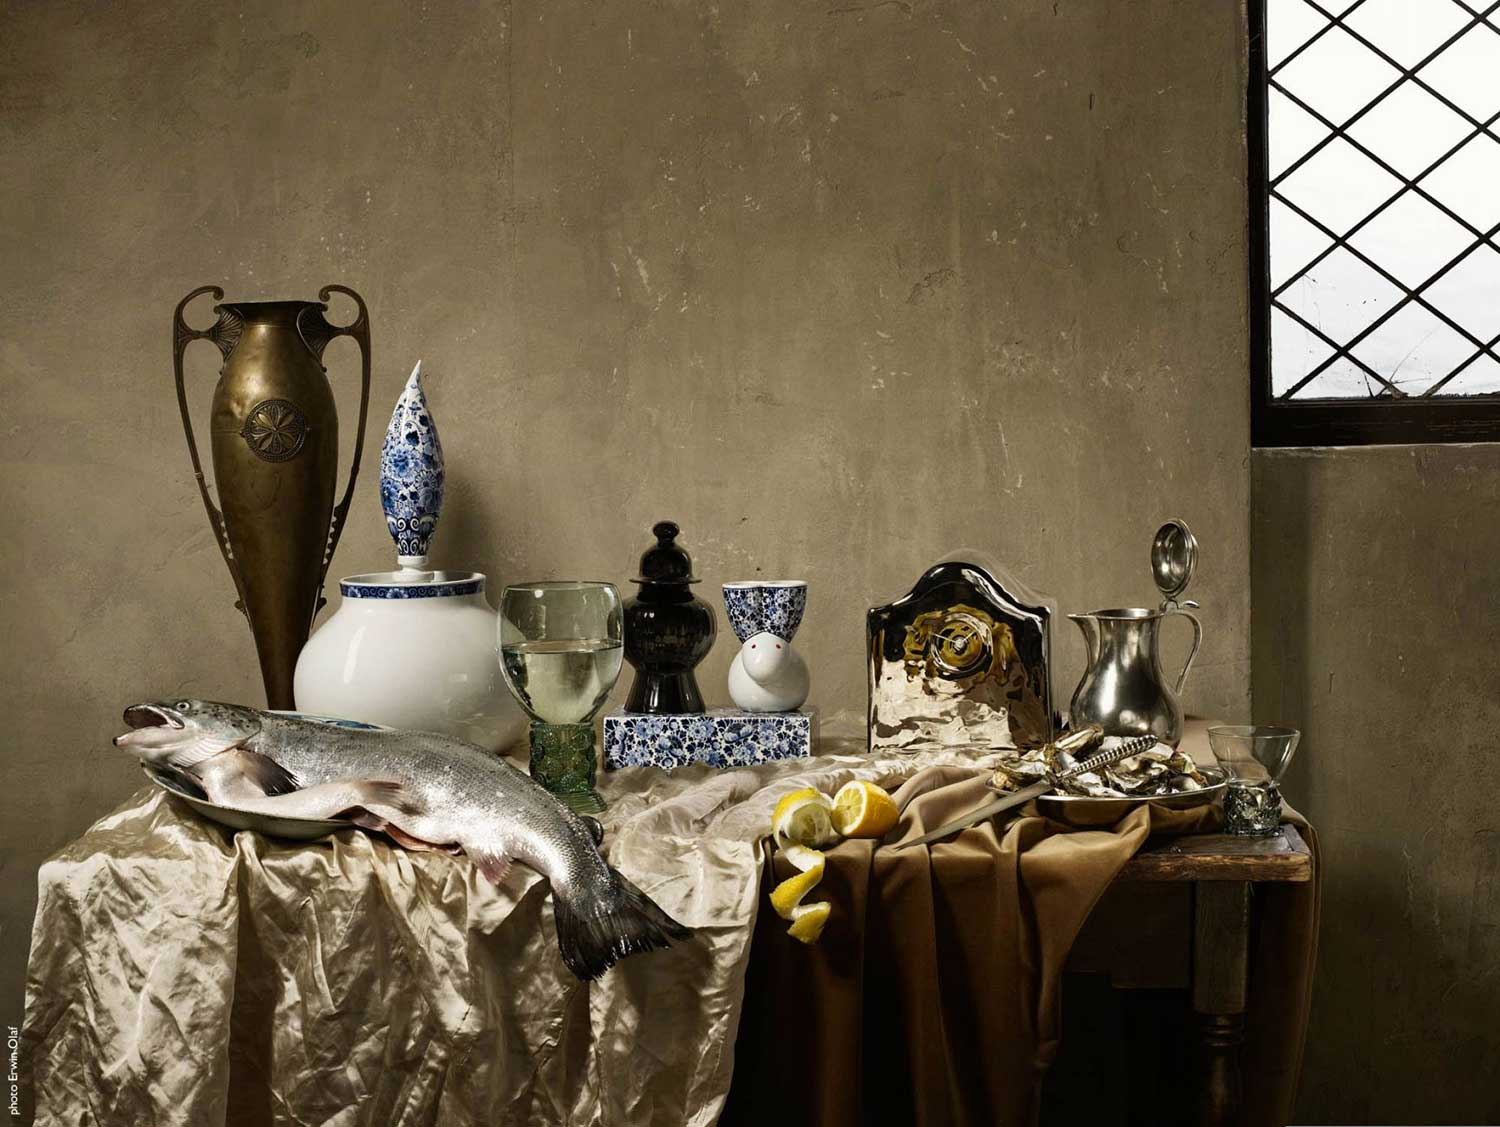 Still Life Accessory No1, Concept & Photography by Marcel Wanders & Erwin Olaf, Styling by Studio Aandacht | Yellowtrace.